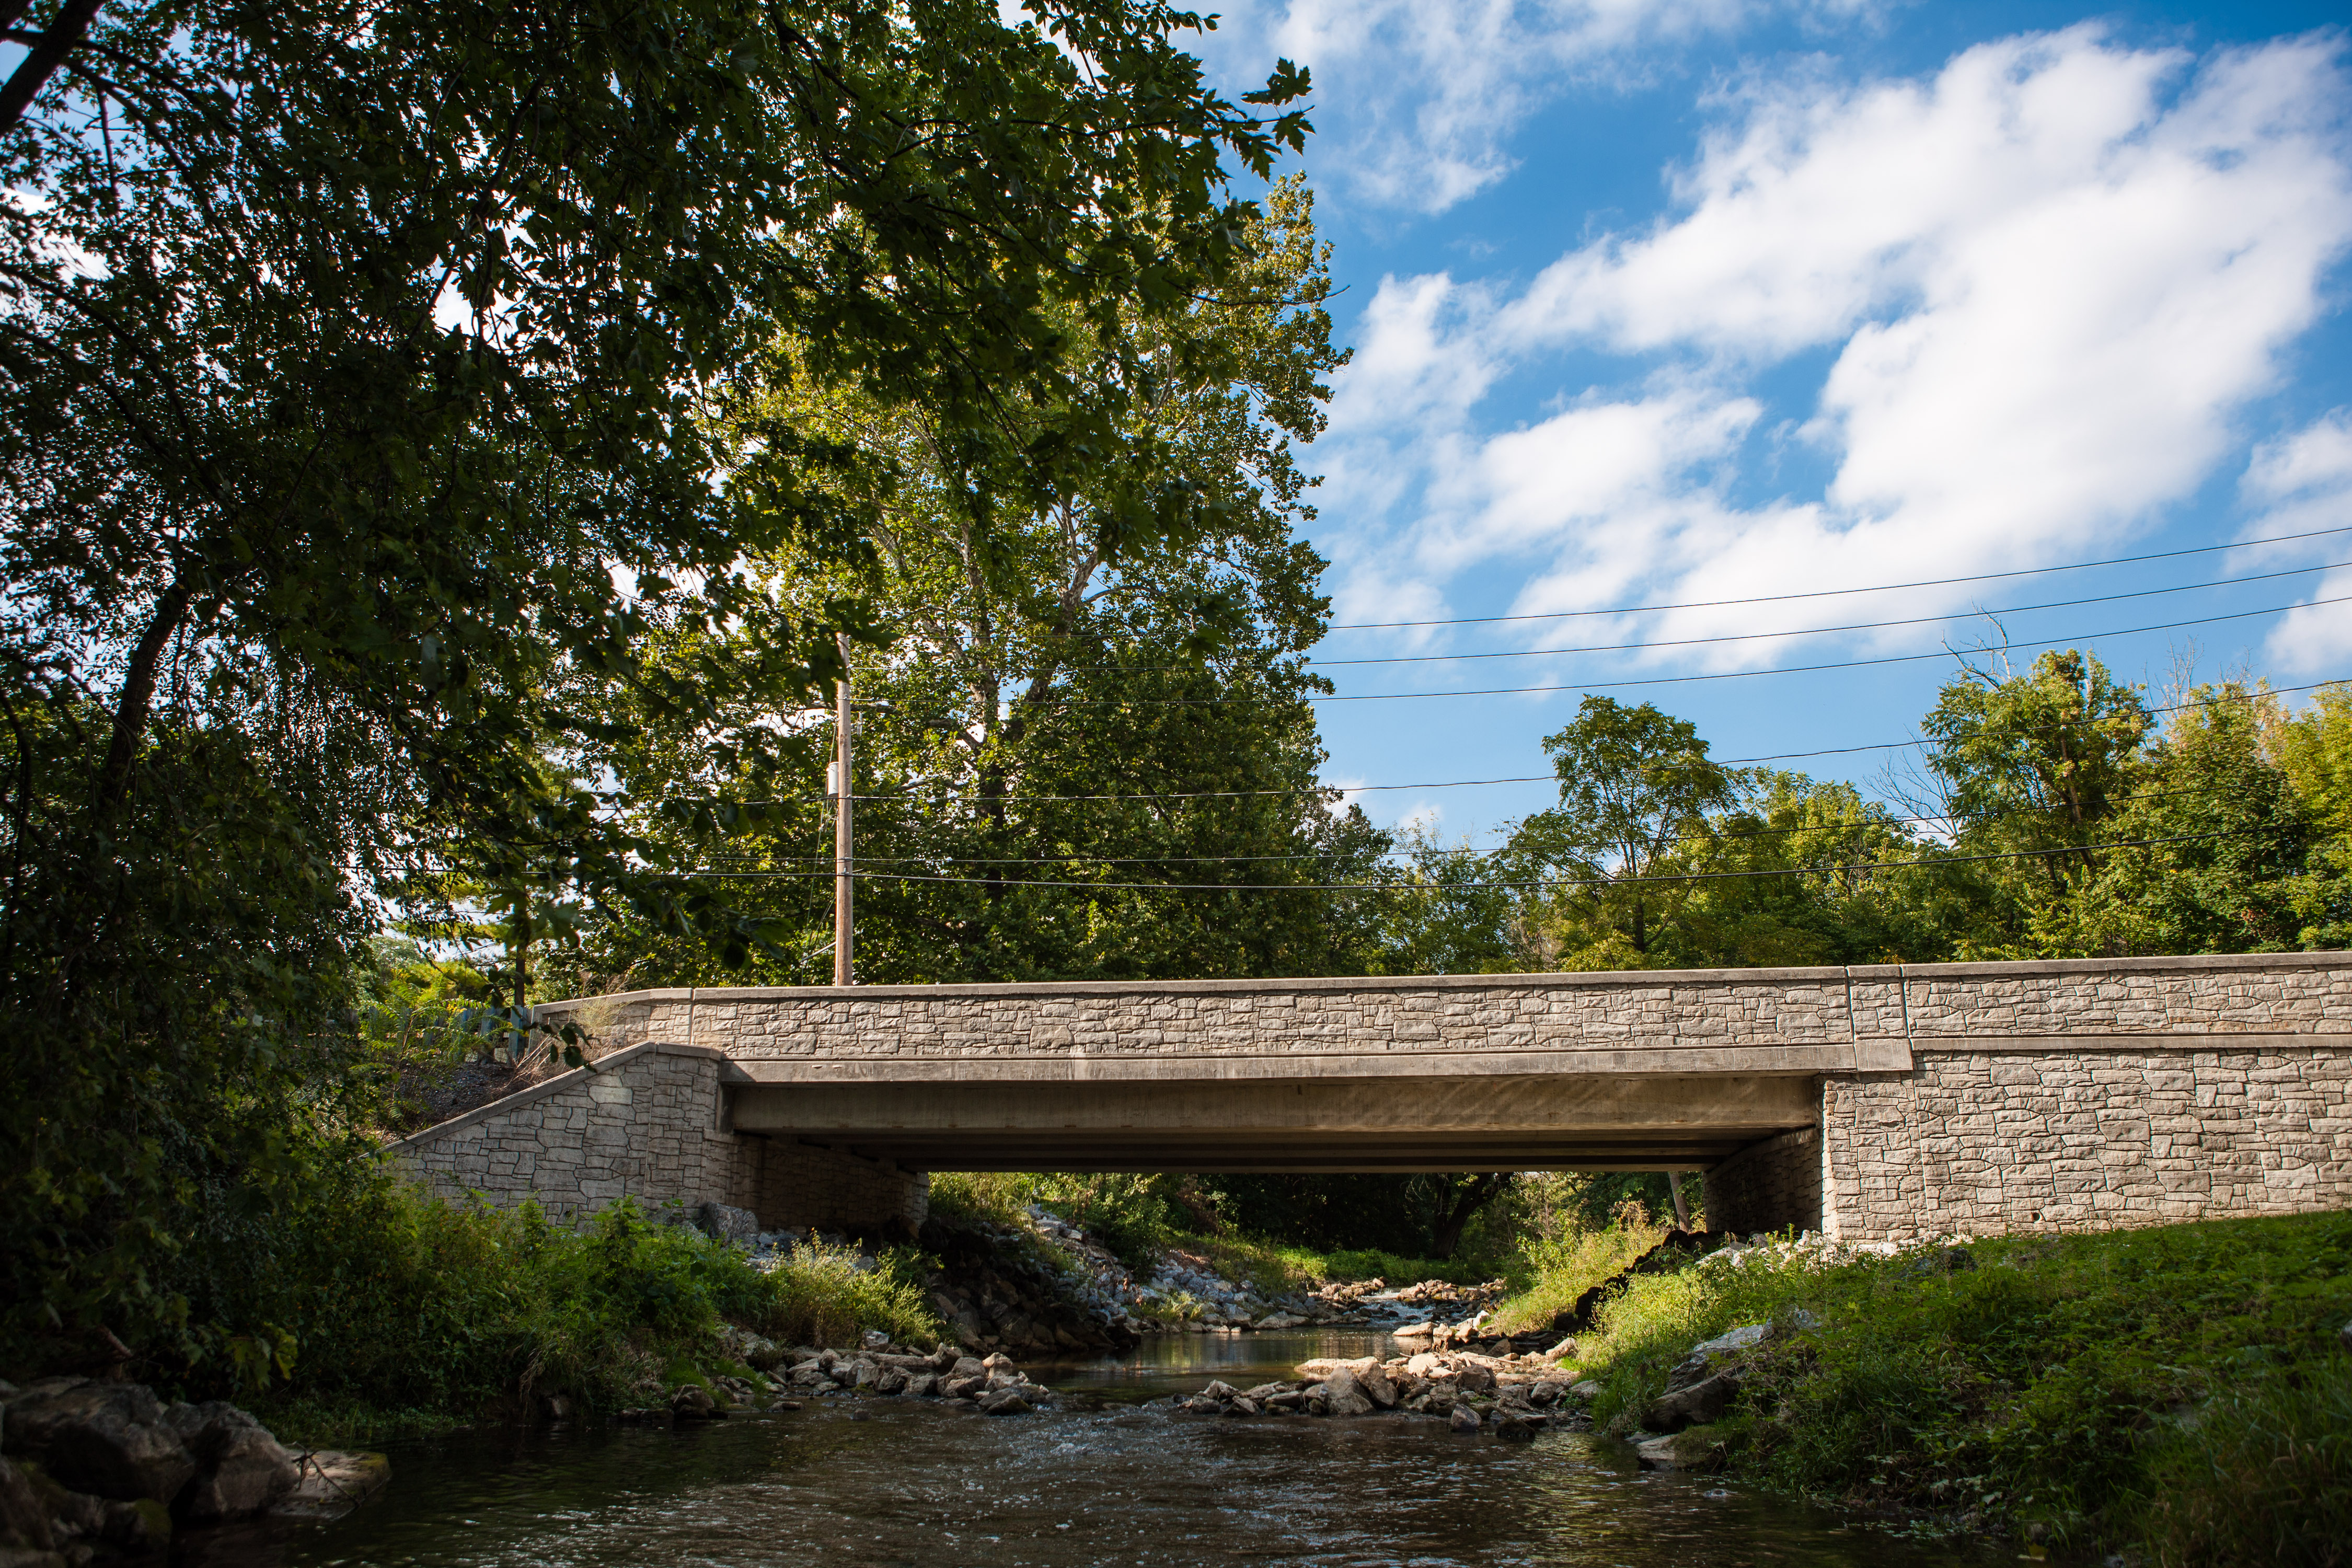 Maintaining and updating transportation infrastructure such as bridges is an important part of municipal engineering.